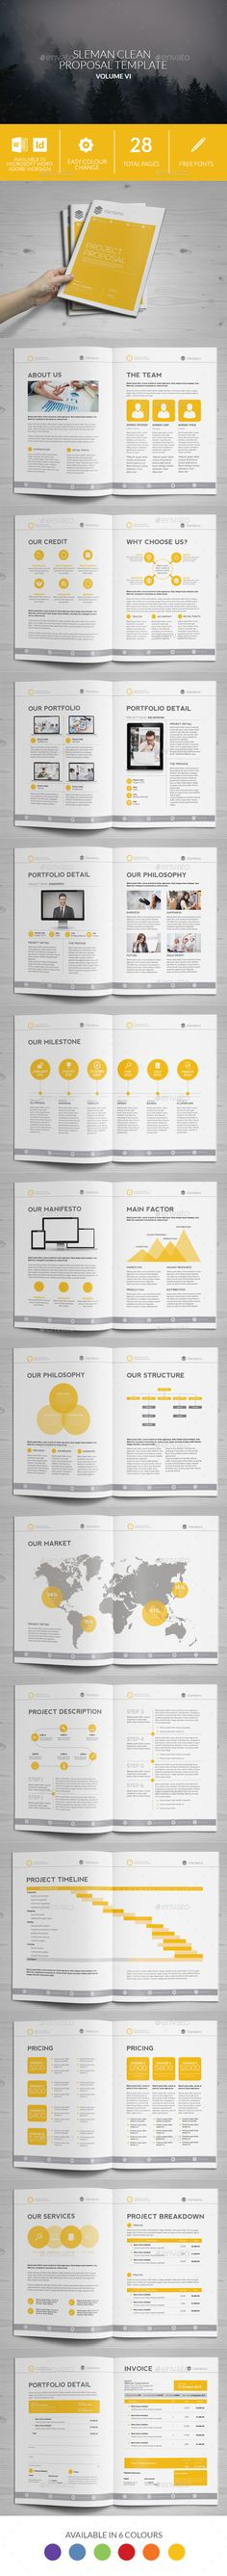 Gstudio Web Proposal Template V2 Proposal templates, Proposals - cost proposal template